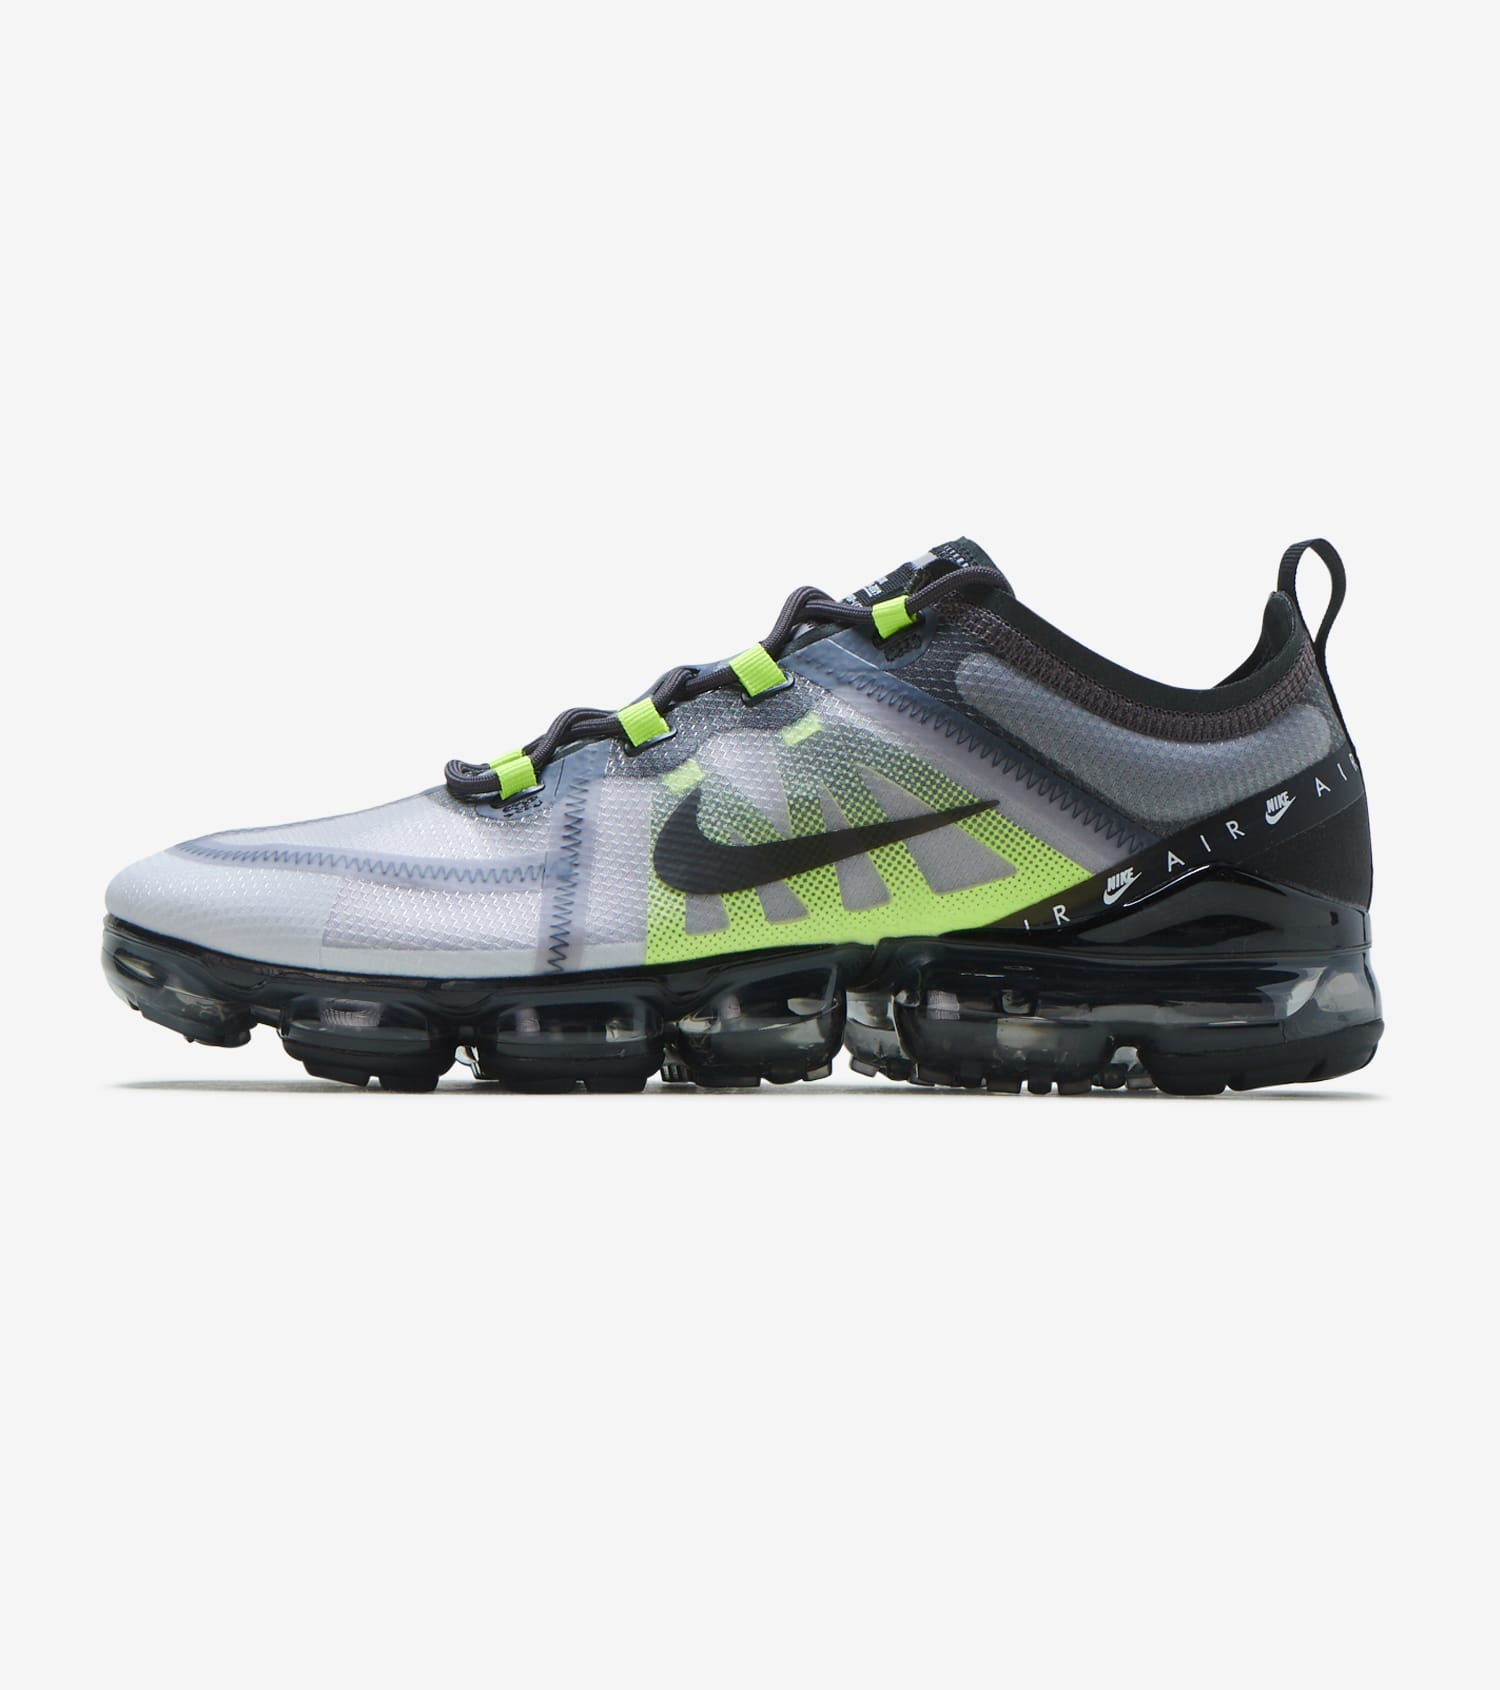 huge discount 2dc96 1ffd0 Air Vapormax 2019 LX